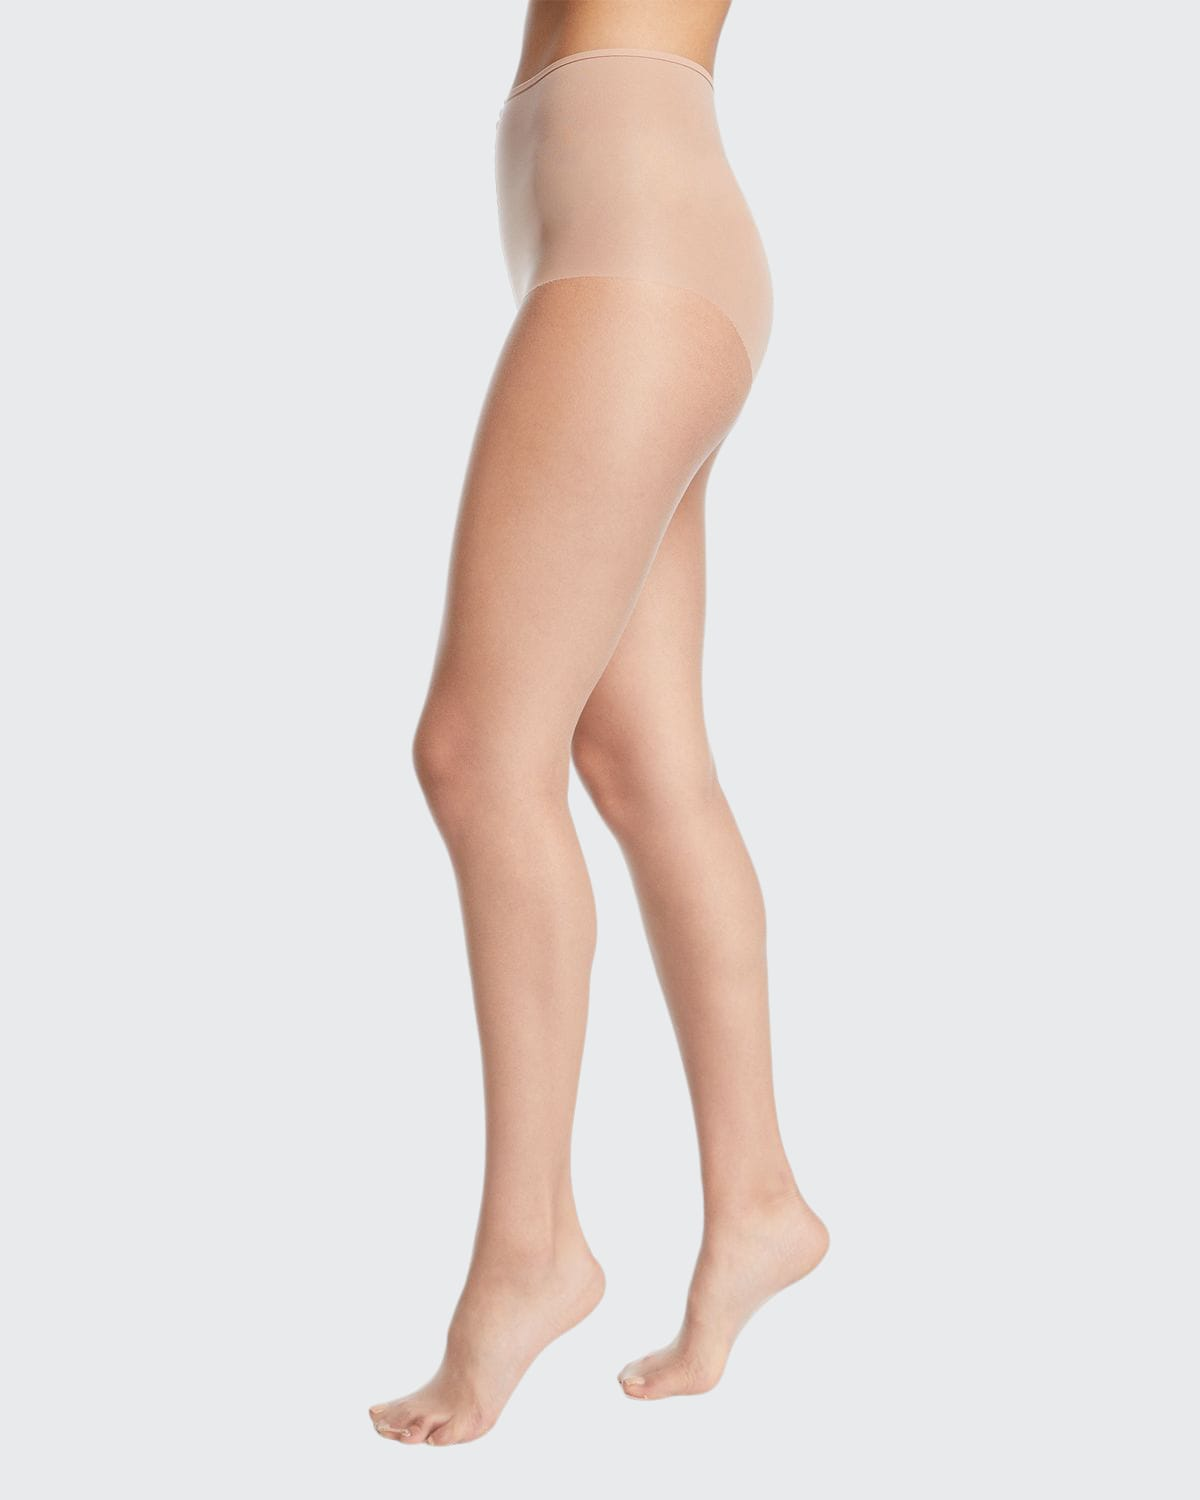 Beyond Nudes Whisper Weight Control Top Tights